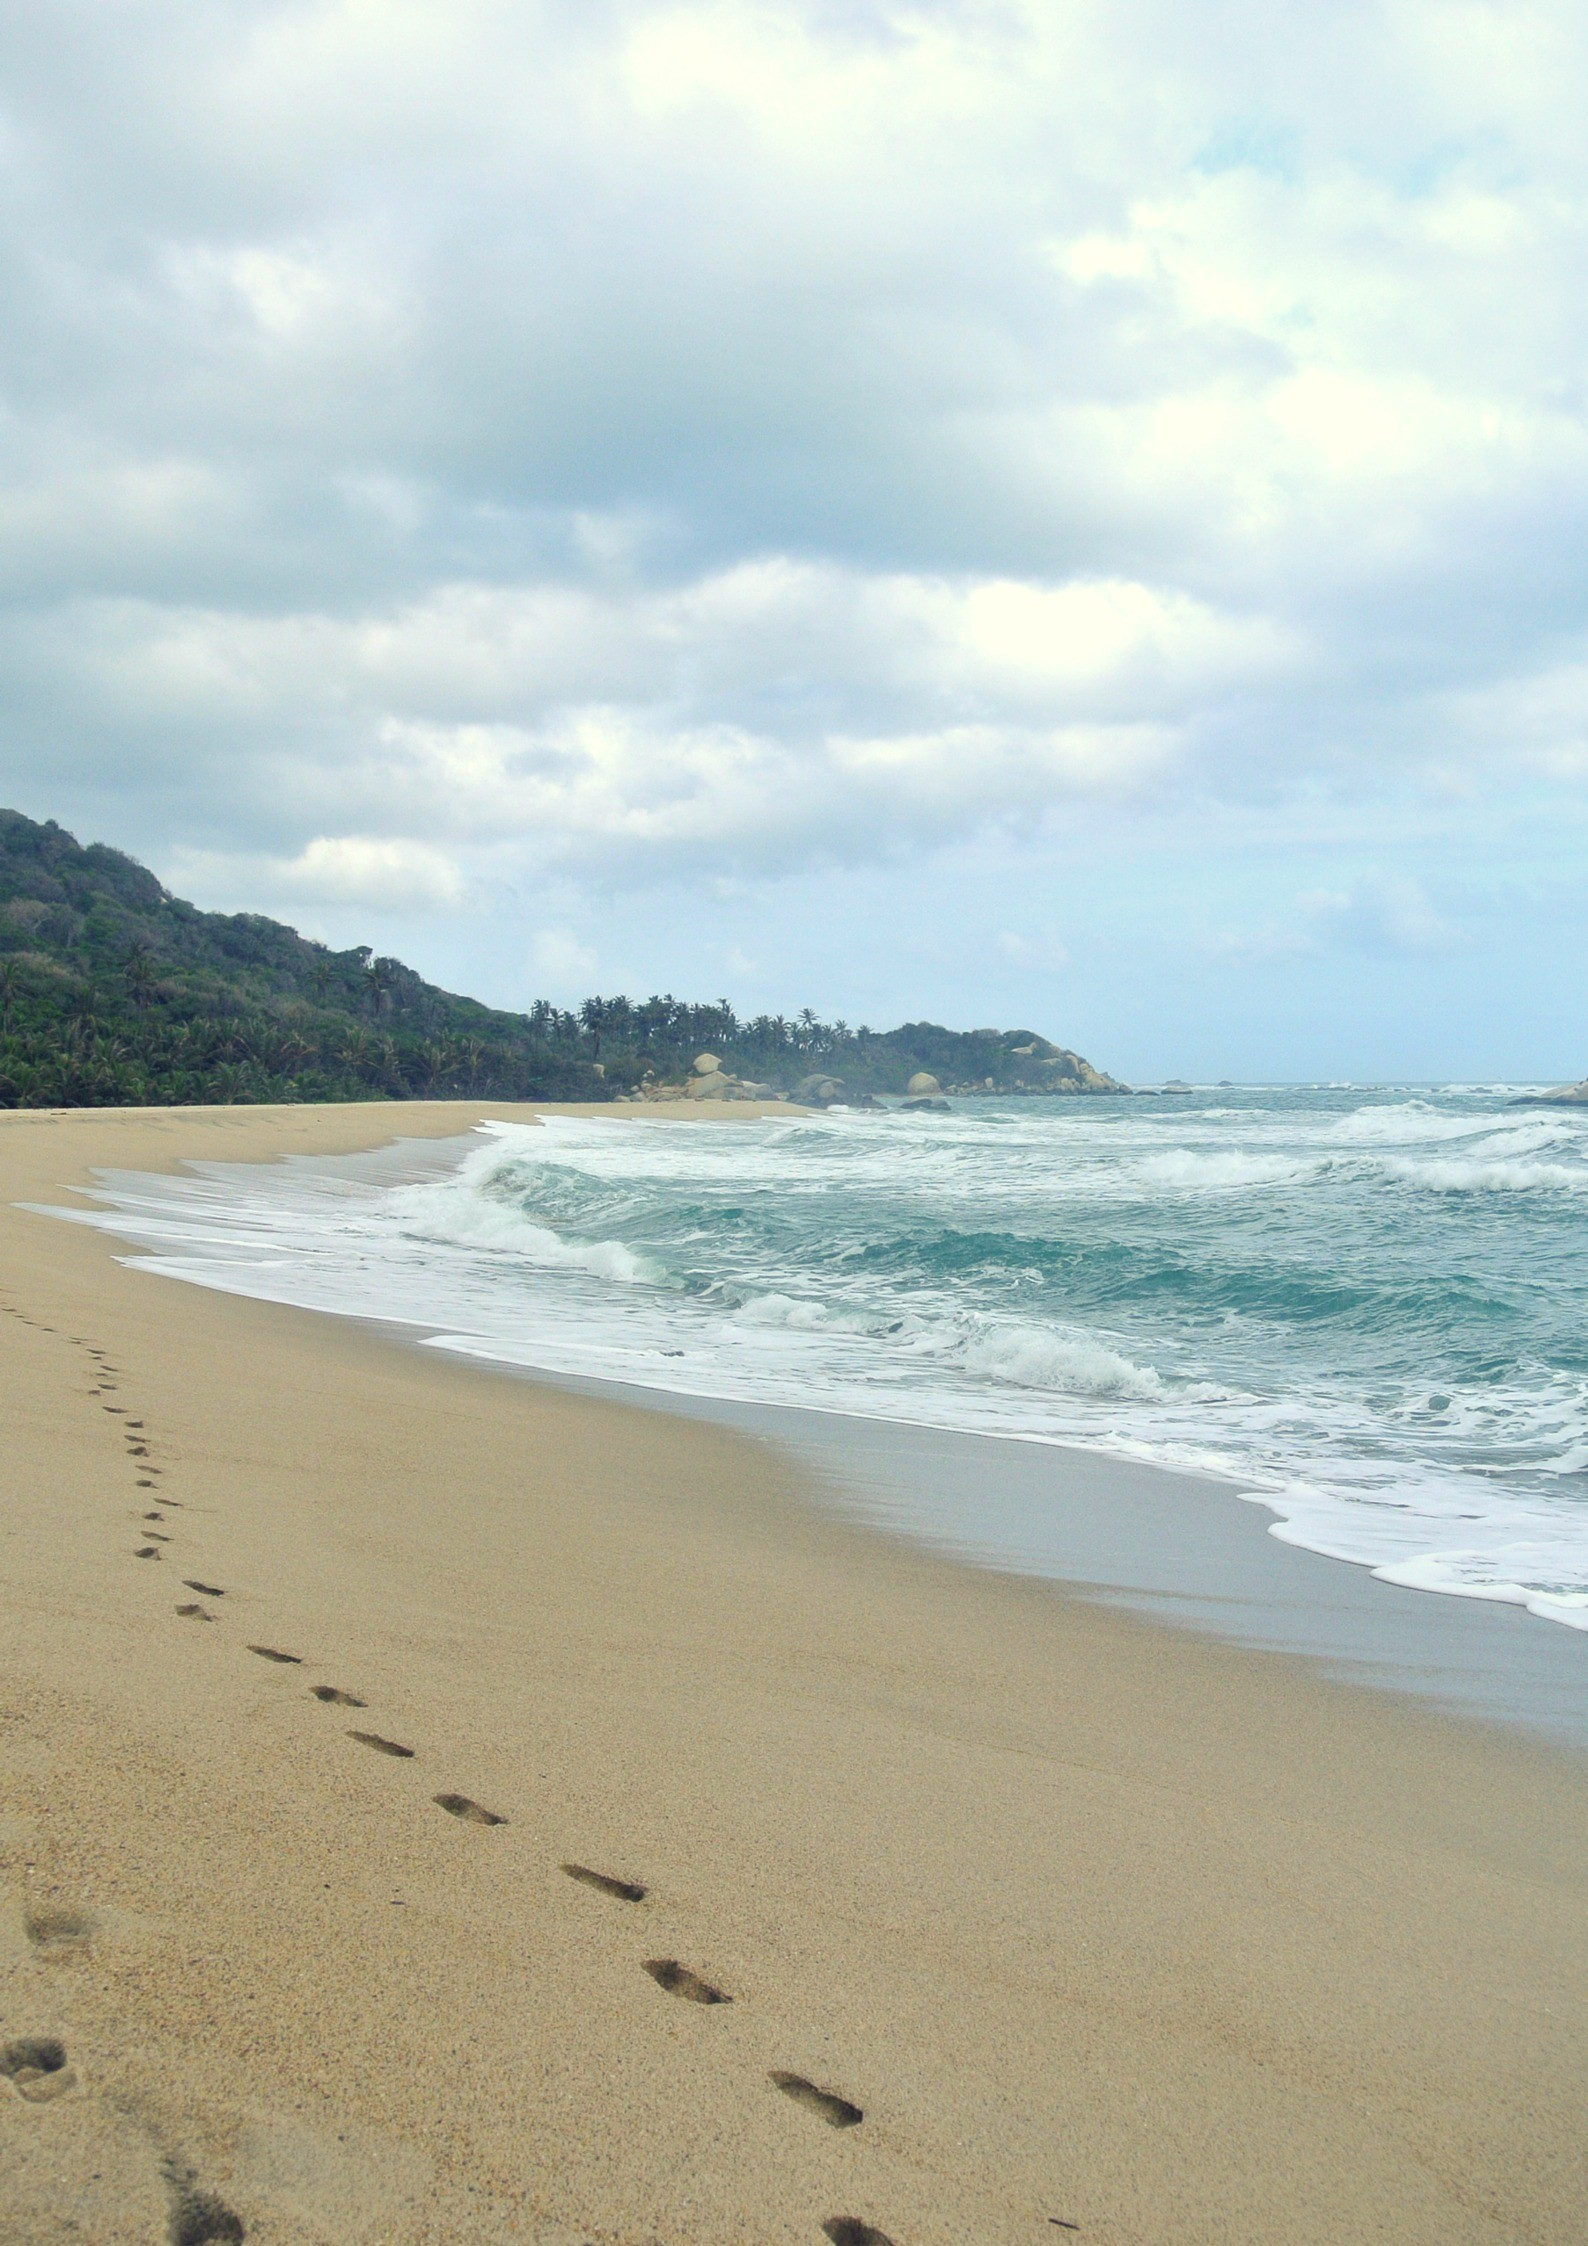 Trekking to Parque Tayrona isn't difficult, you just need a bit of advance planning.